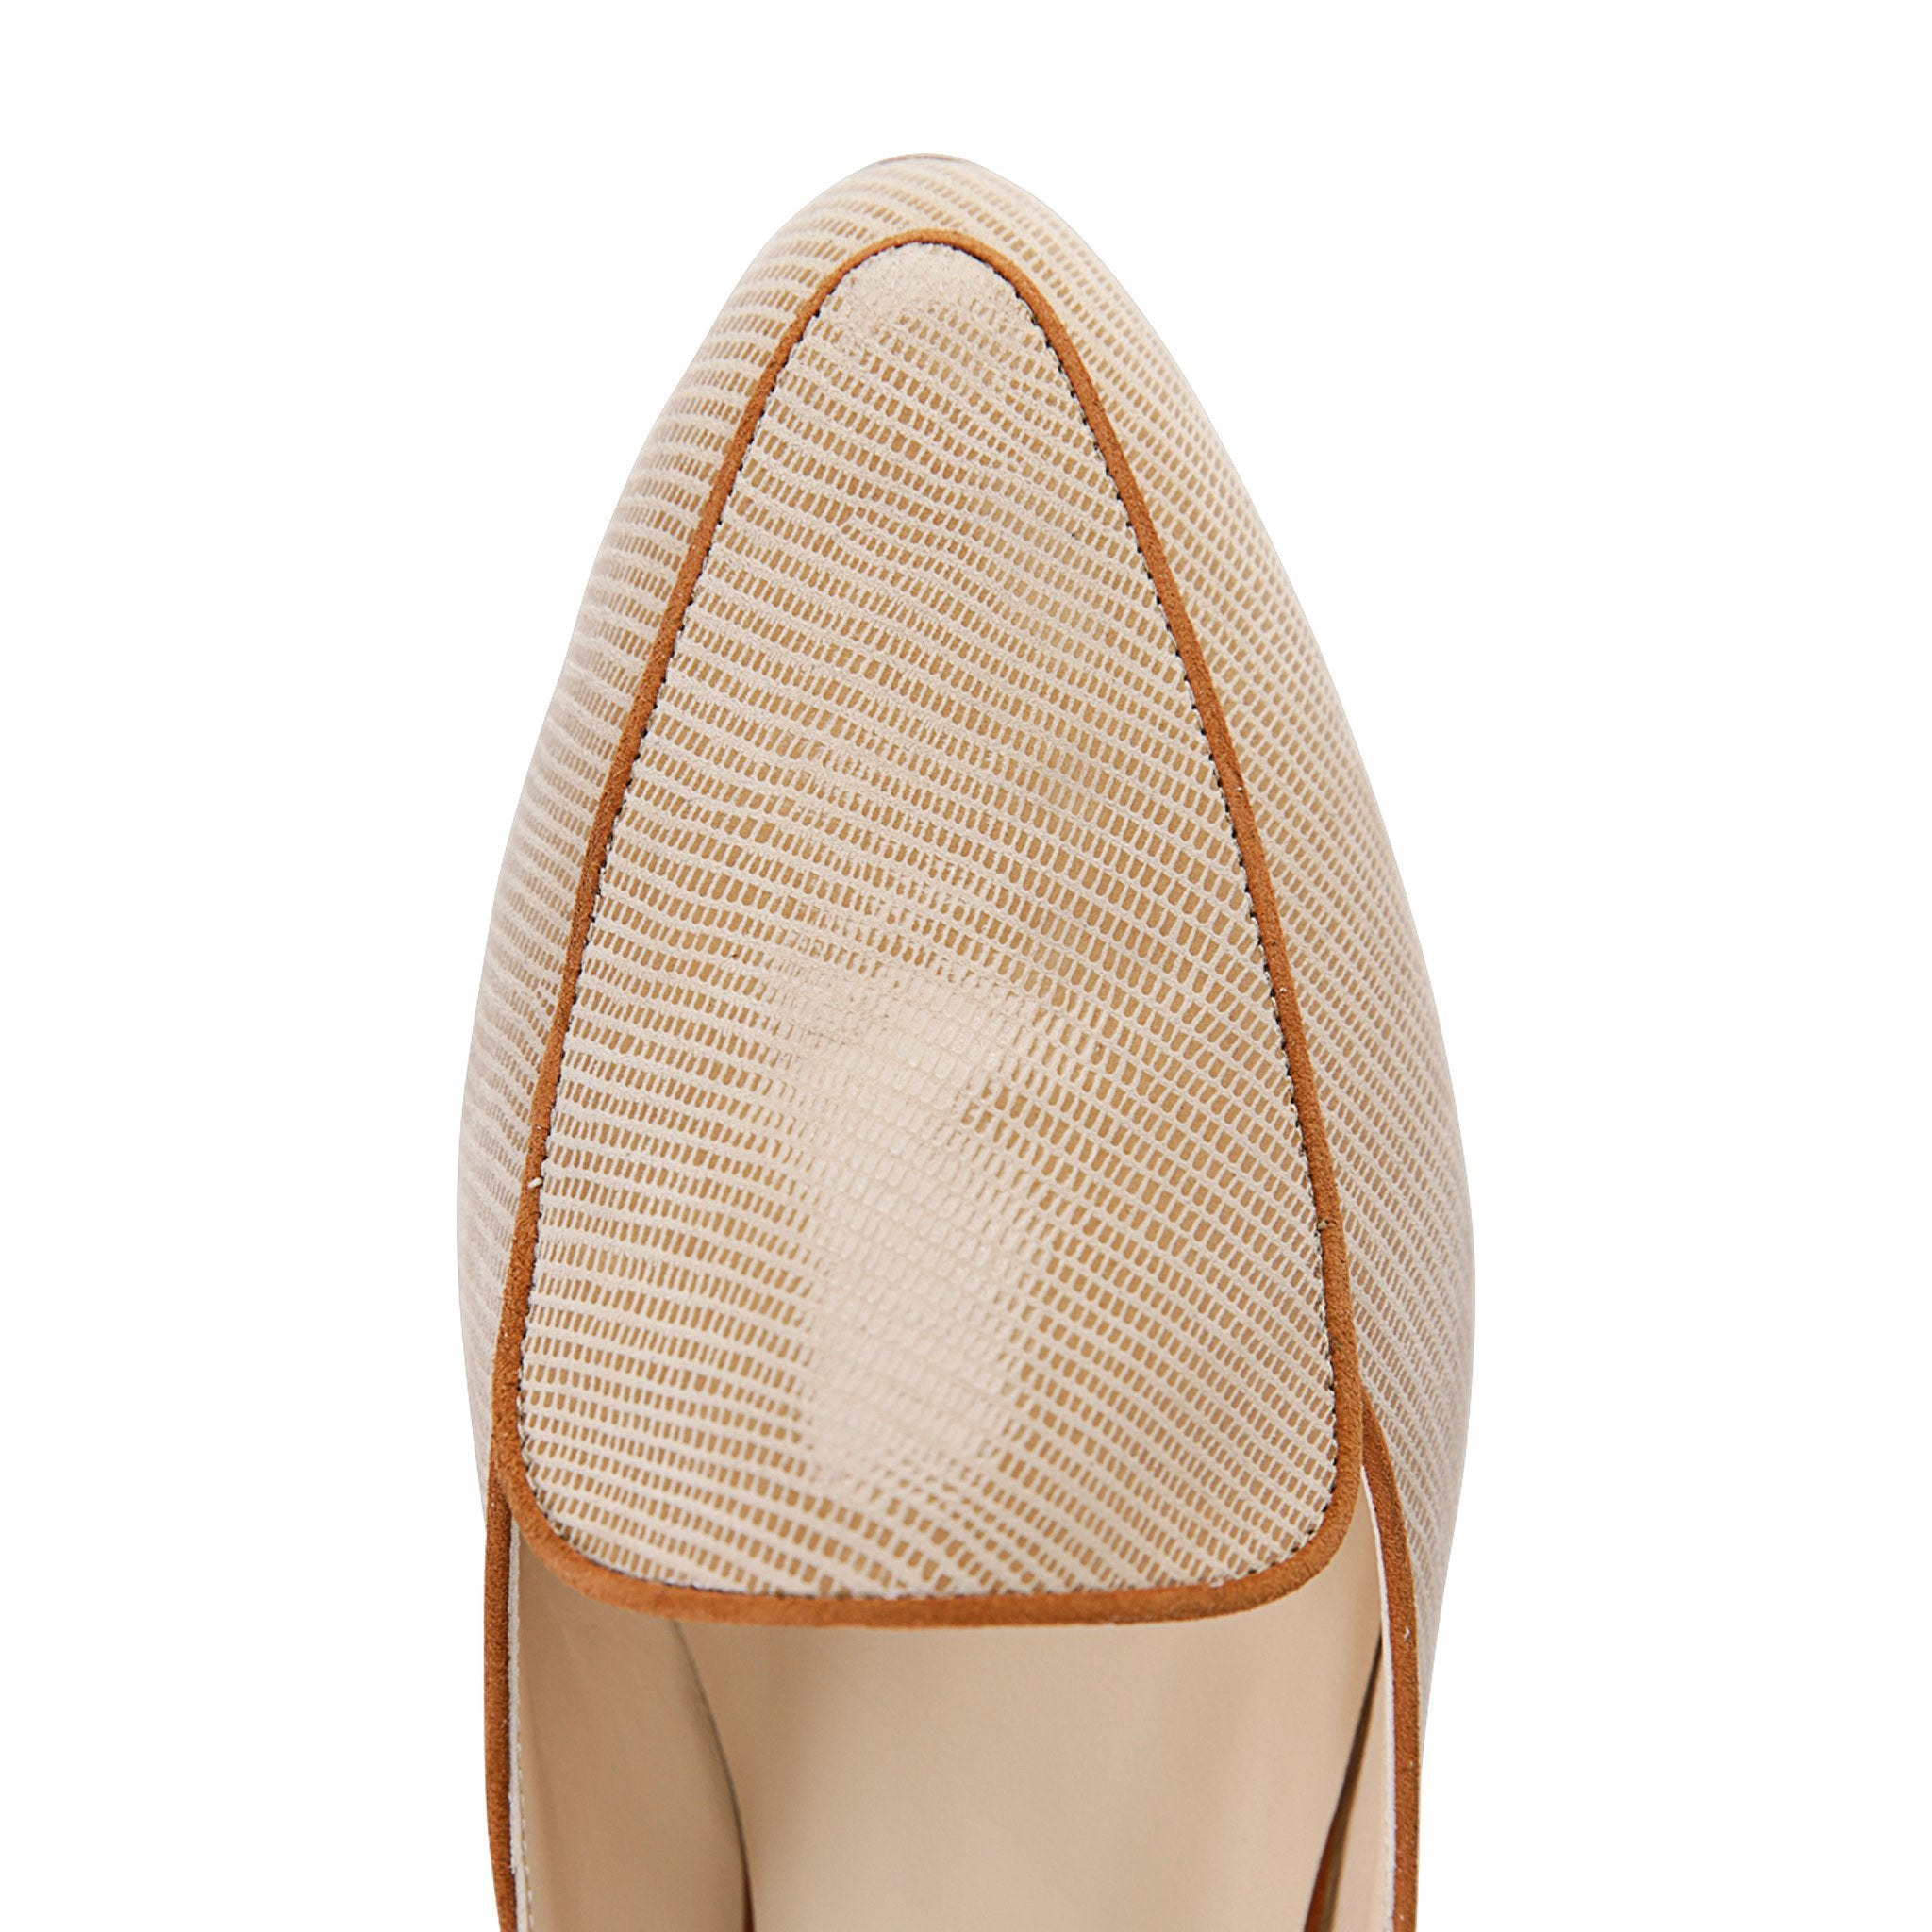 ISEO - Varanus Tan + Velukid Dune, VIAJIYU - Women's Hand Made Sustainable Luxury Shoes. Made in Italy. Made to Order.